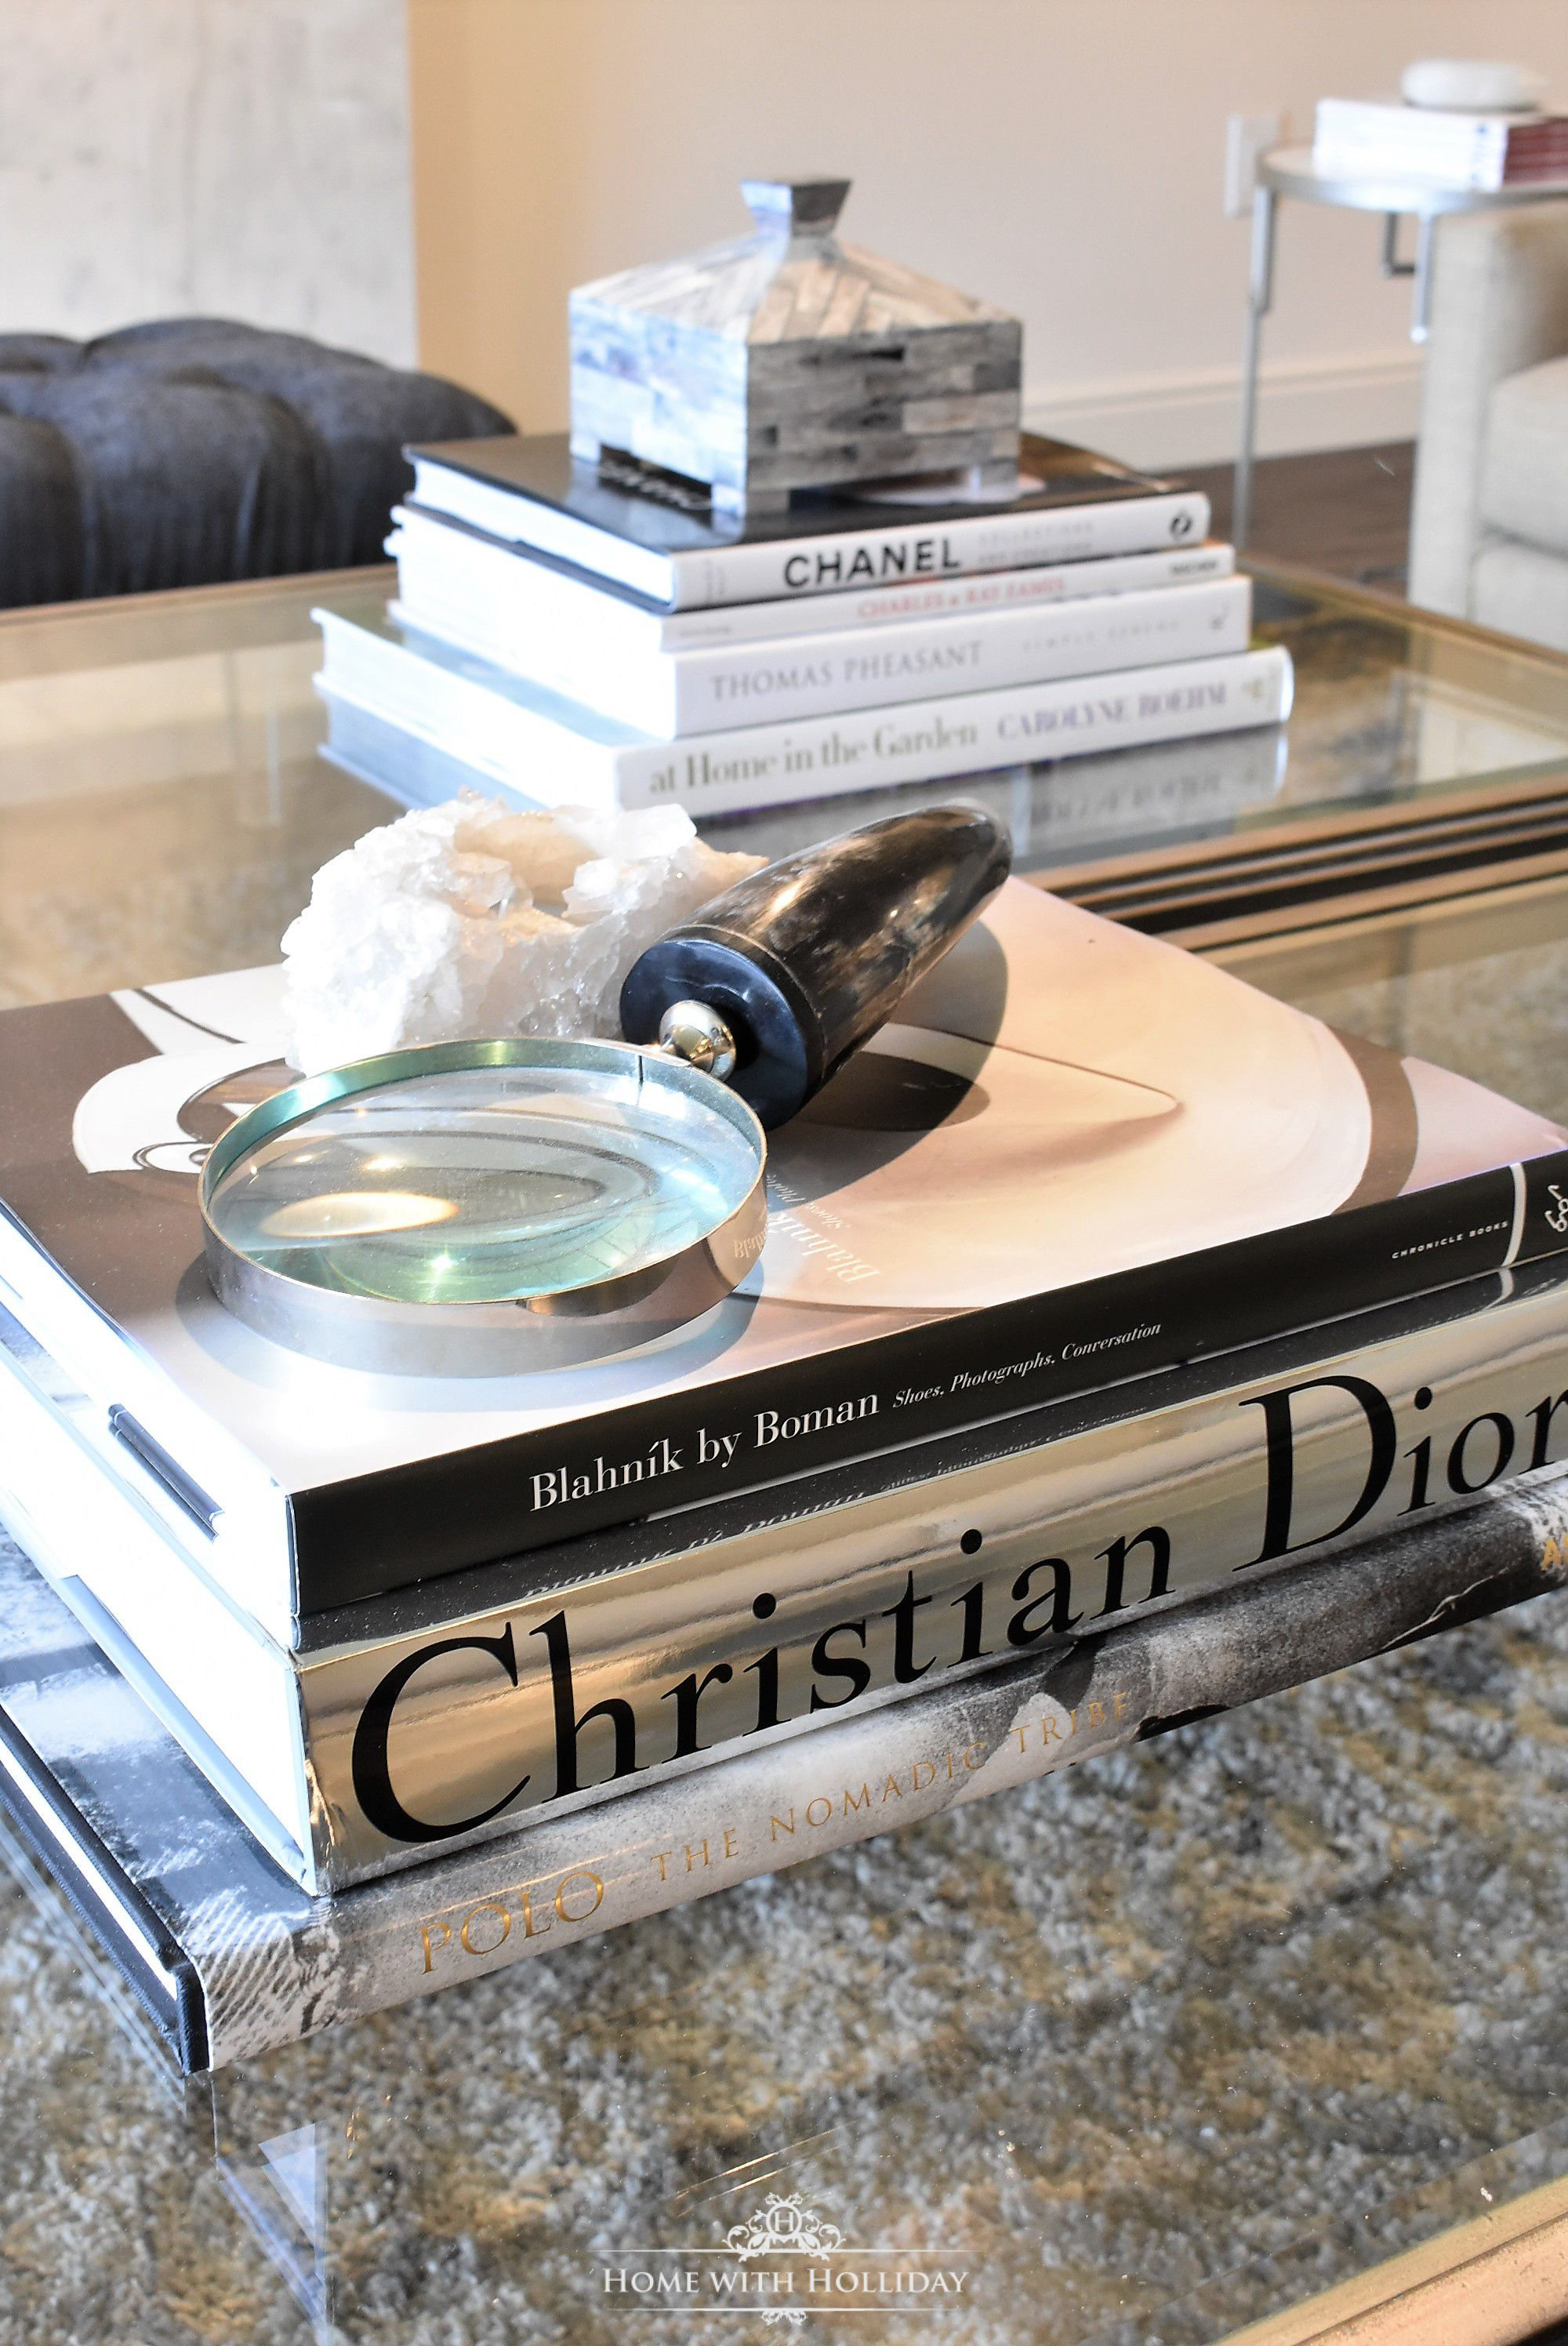 Friday Favorites Coffee Table Books On Fashion Design Coffee Table Books Decor Coffee Table Books Coffee Table